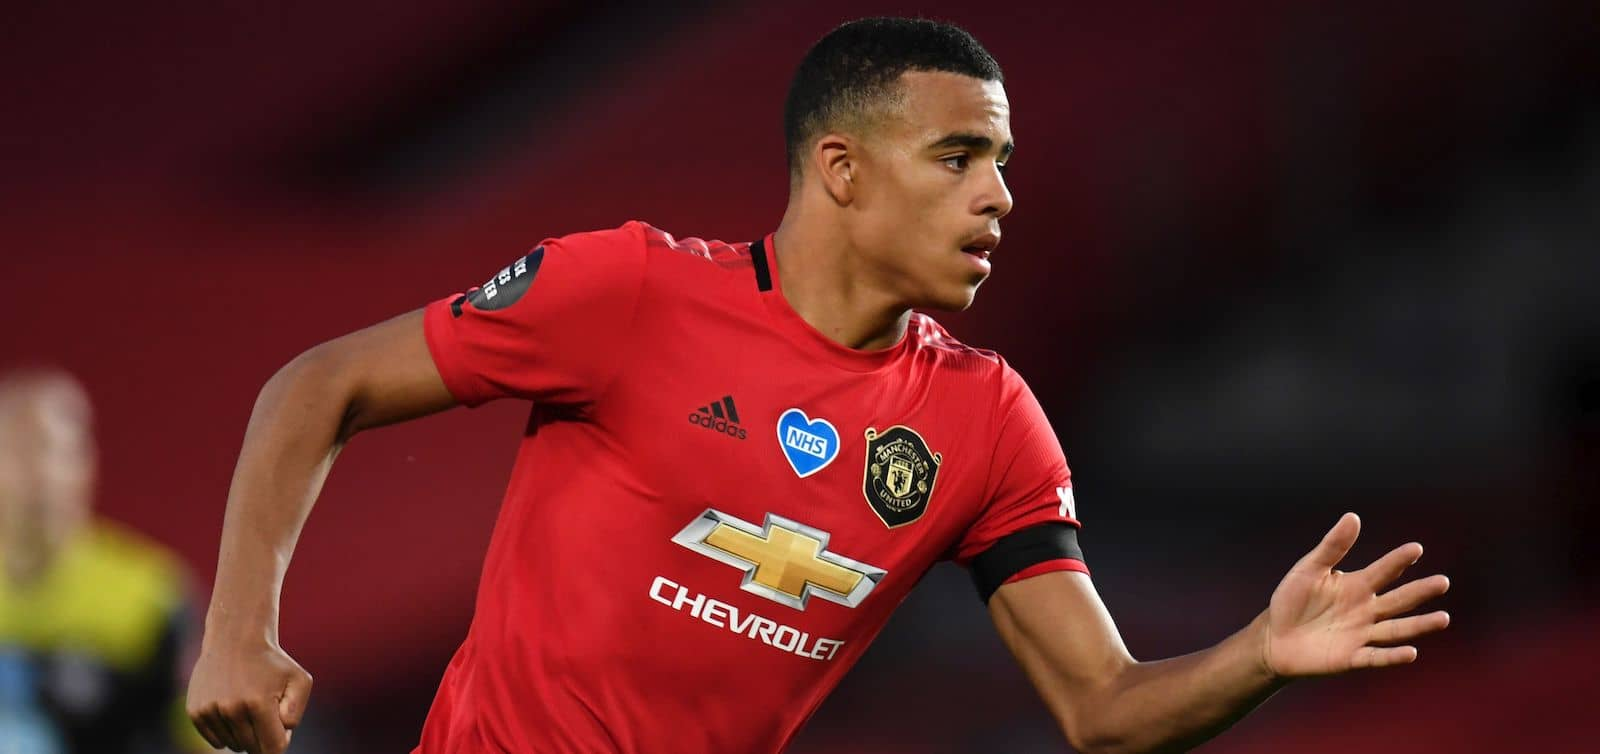 Mason Greenwood will not miss Crystal Palace opener after breaking quarantine rules